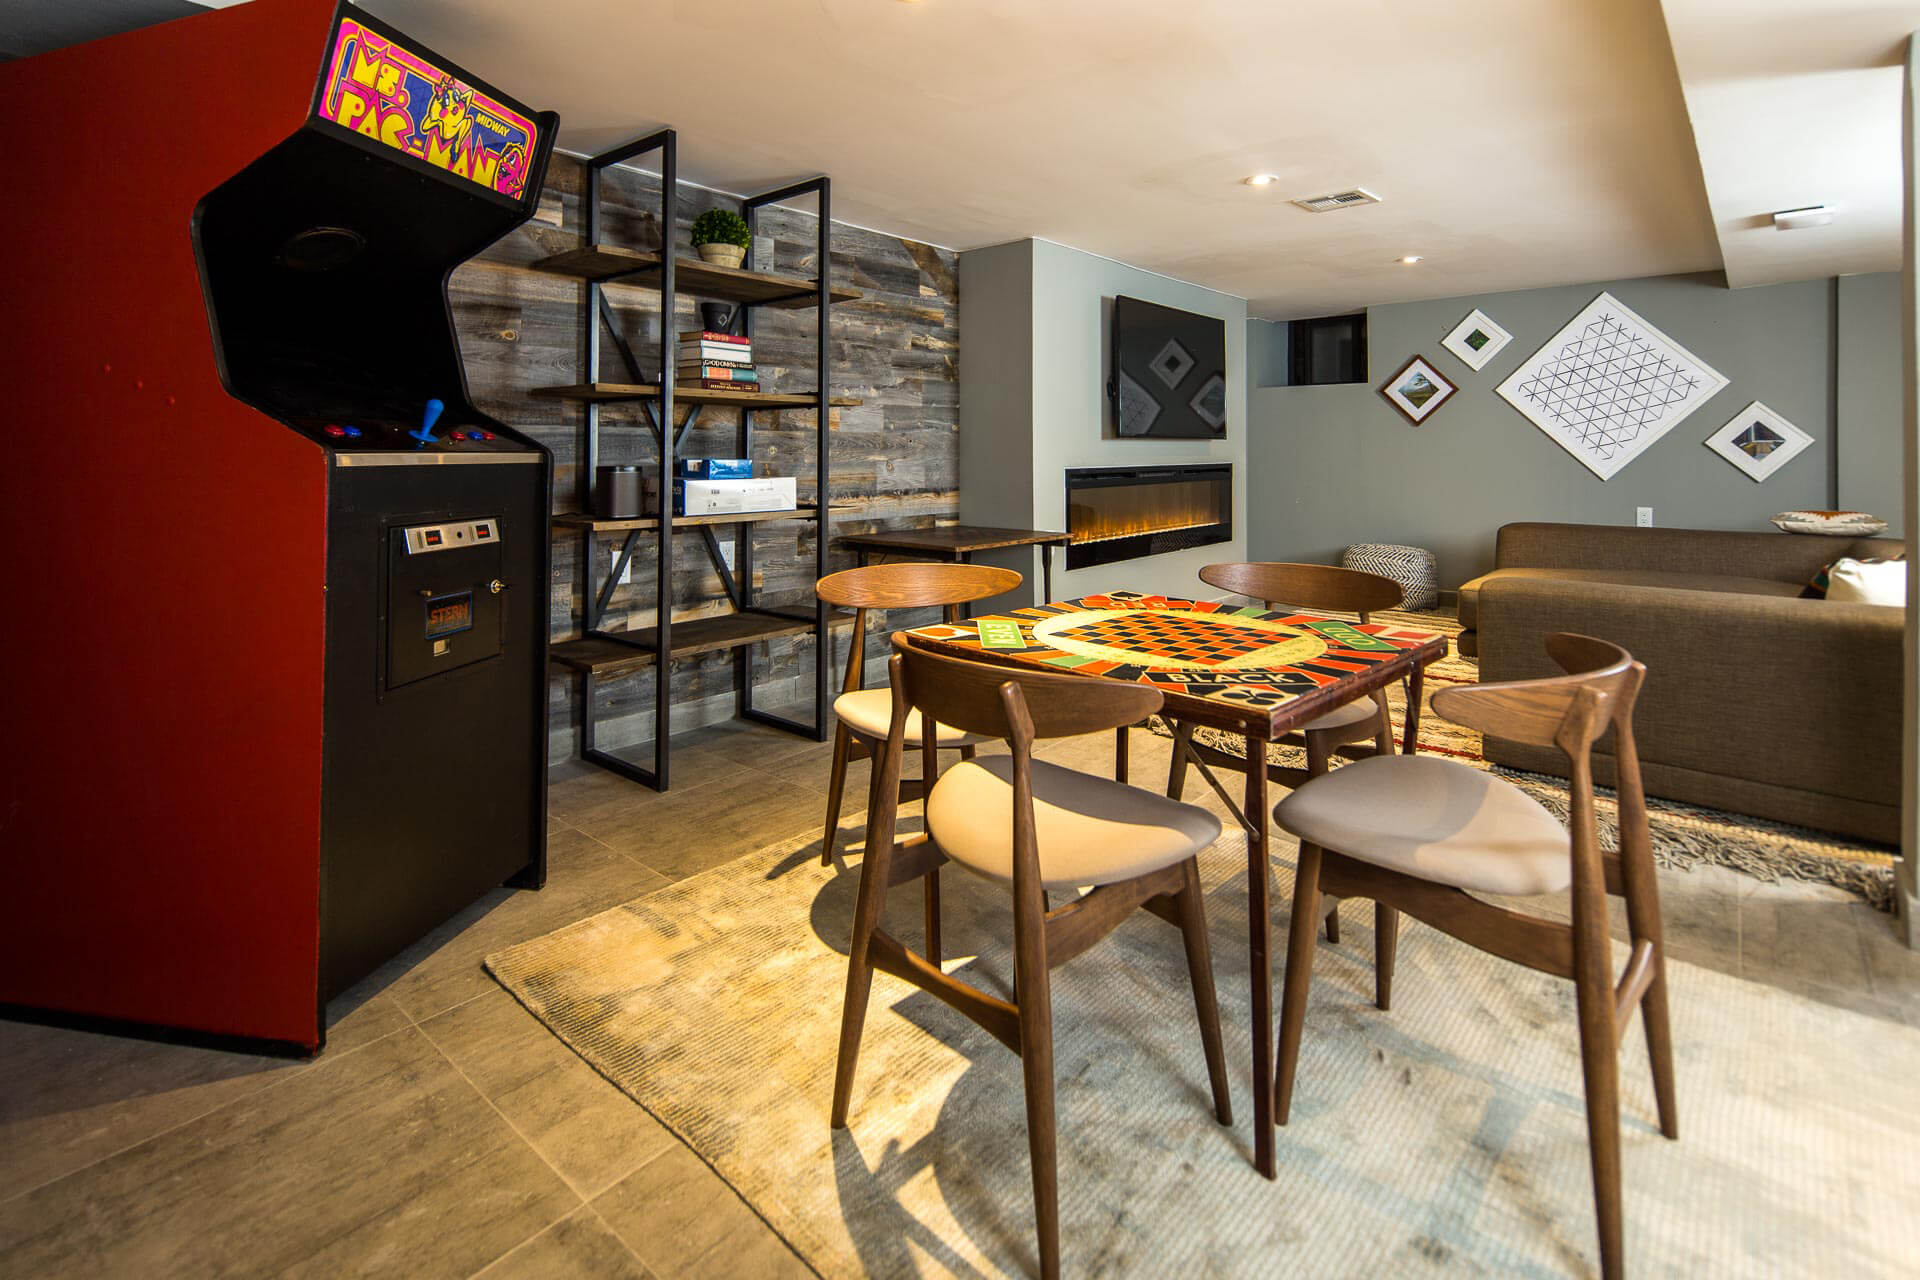 The Game Room at Common Albany is a space shared by all members in the home.